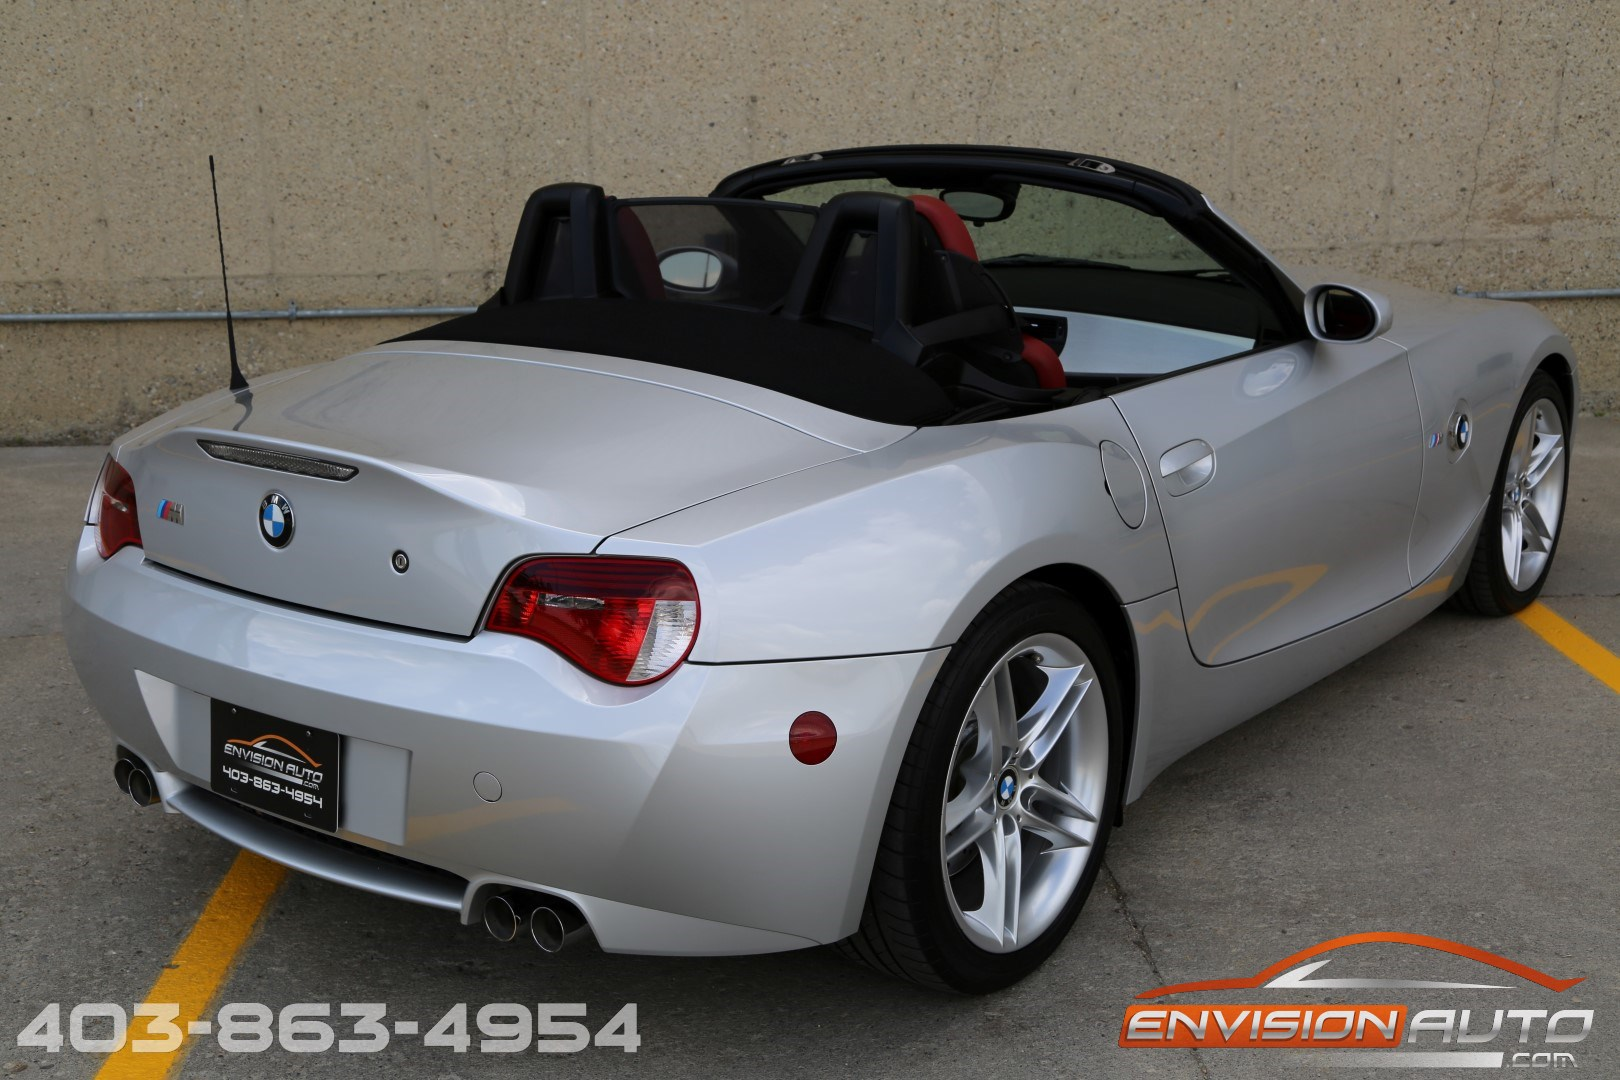 2006 bmw z4m 6 speed m roadster envision auto 2011 Chevrolet Corvette Convertible 2011 Chevrolet Corvette Convertible